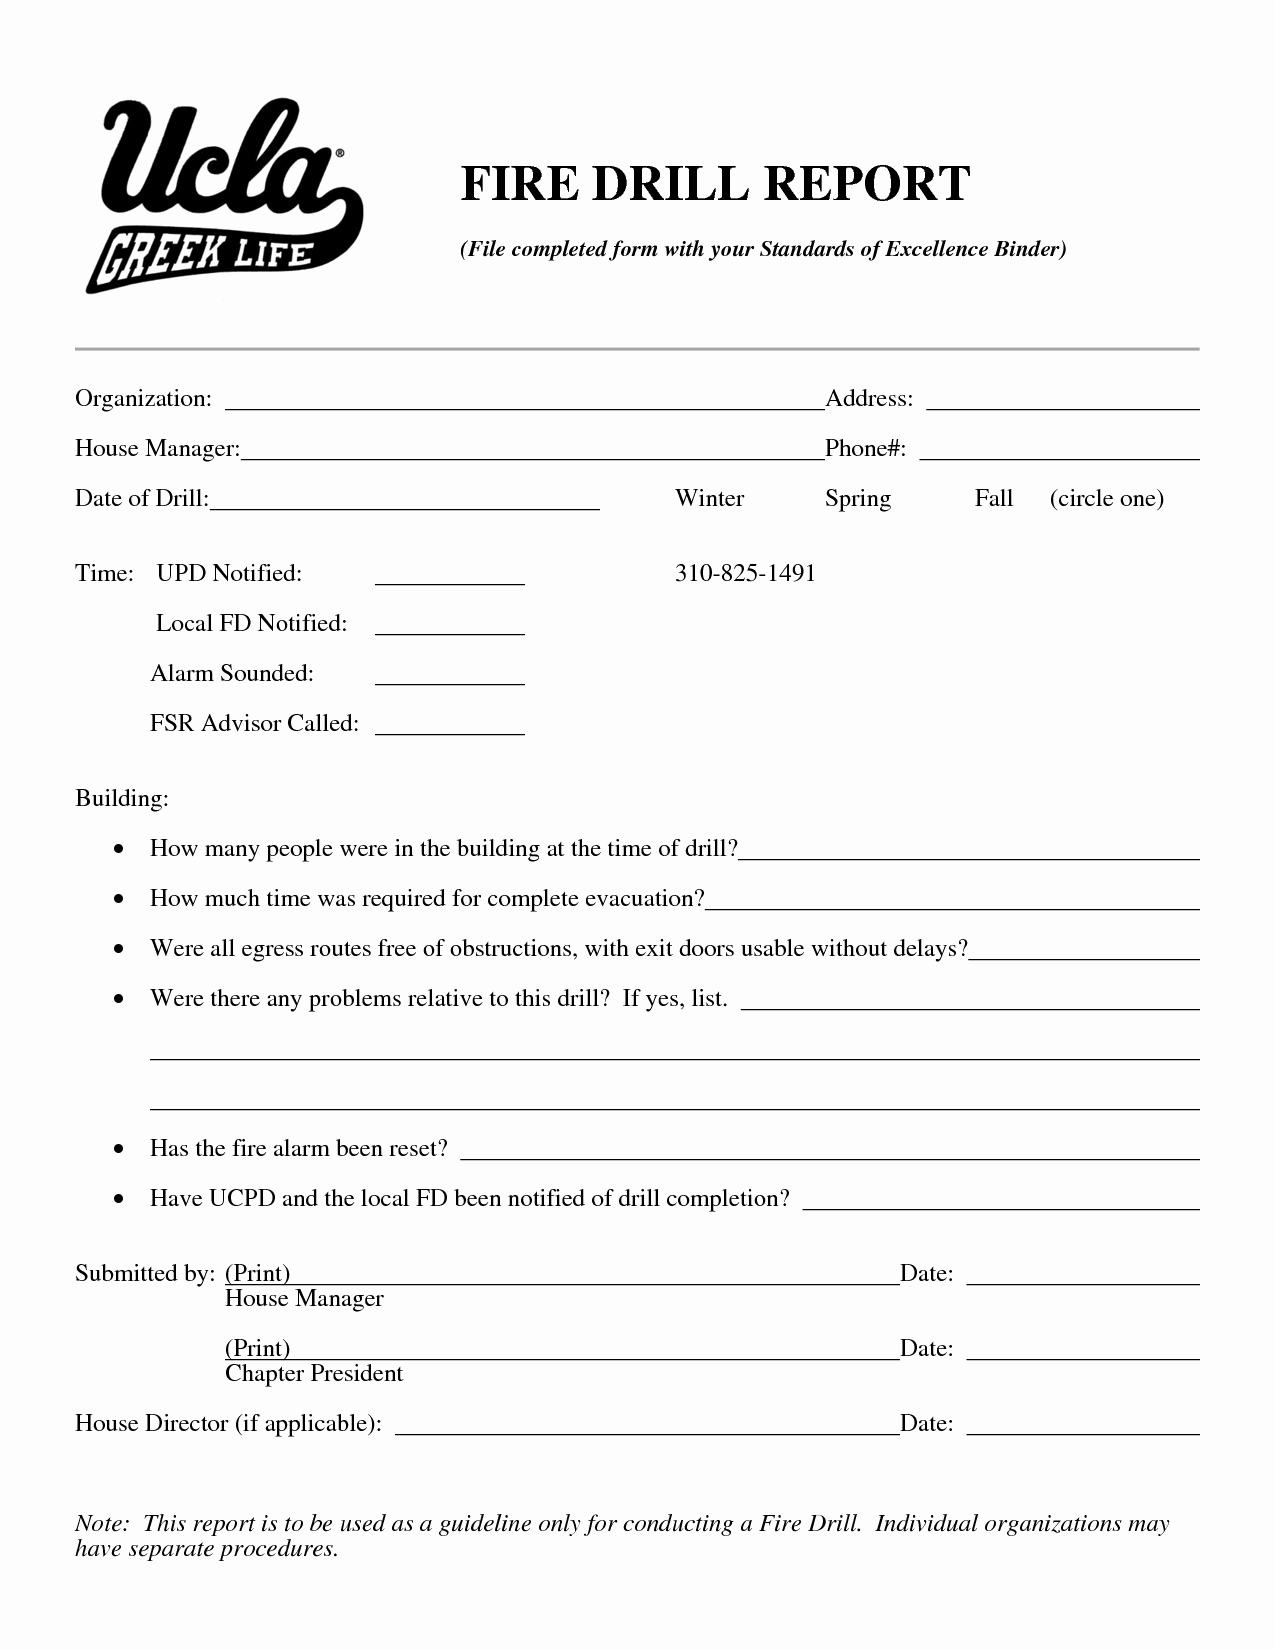 Fire Report Template Luxury Best S Of Fire Drill form Fire Drill Report form